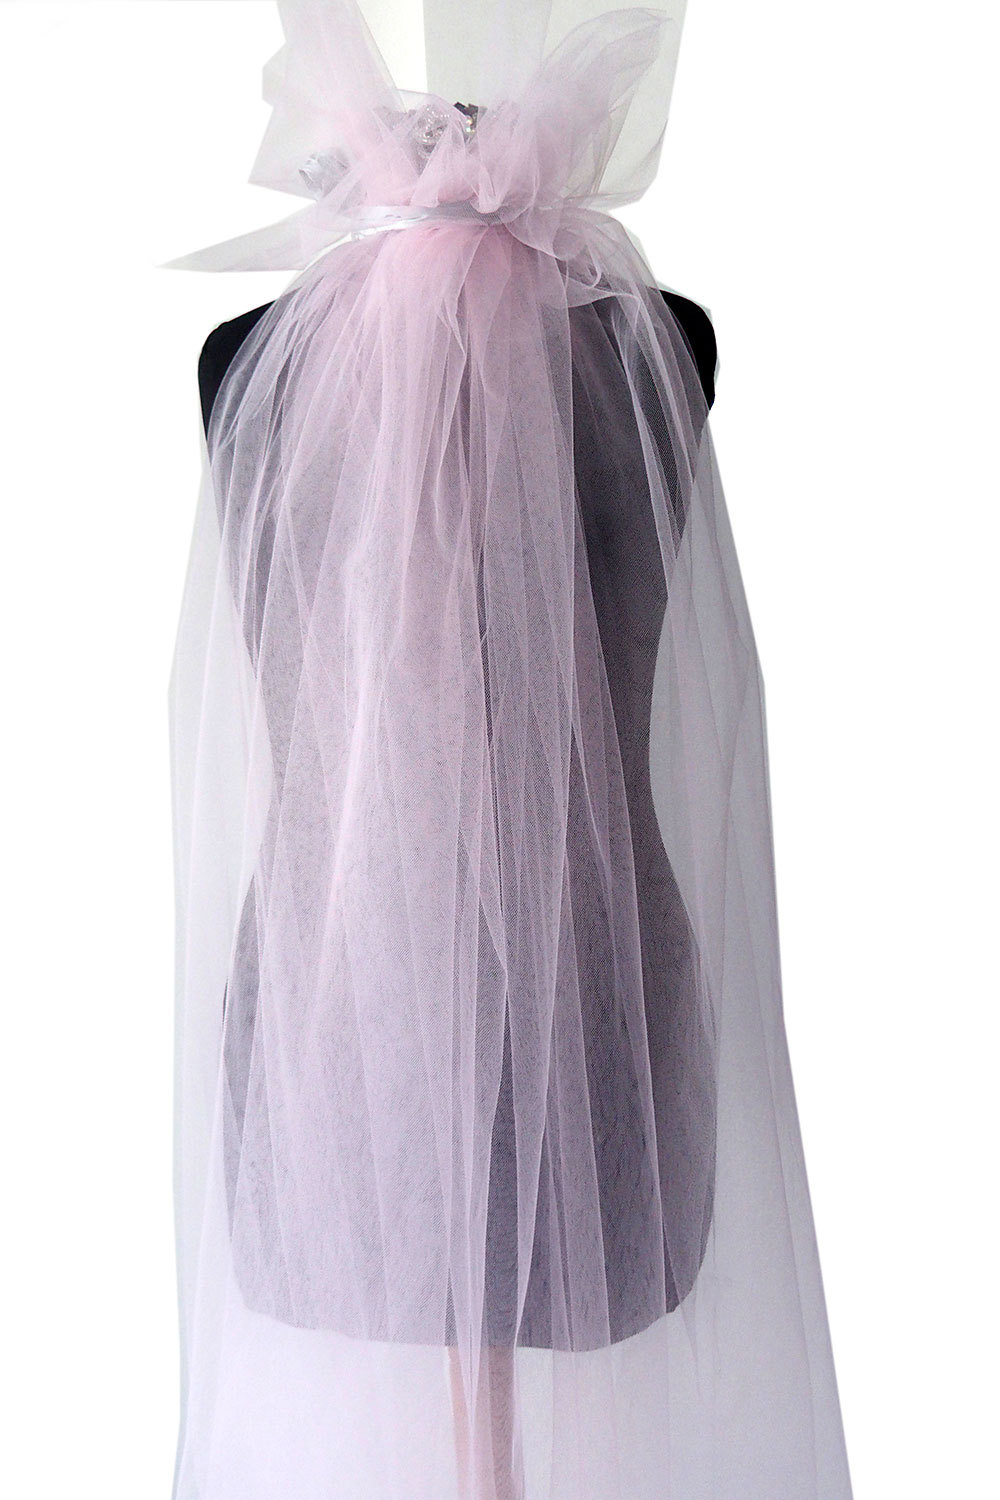 pale pink tulle